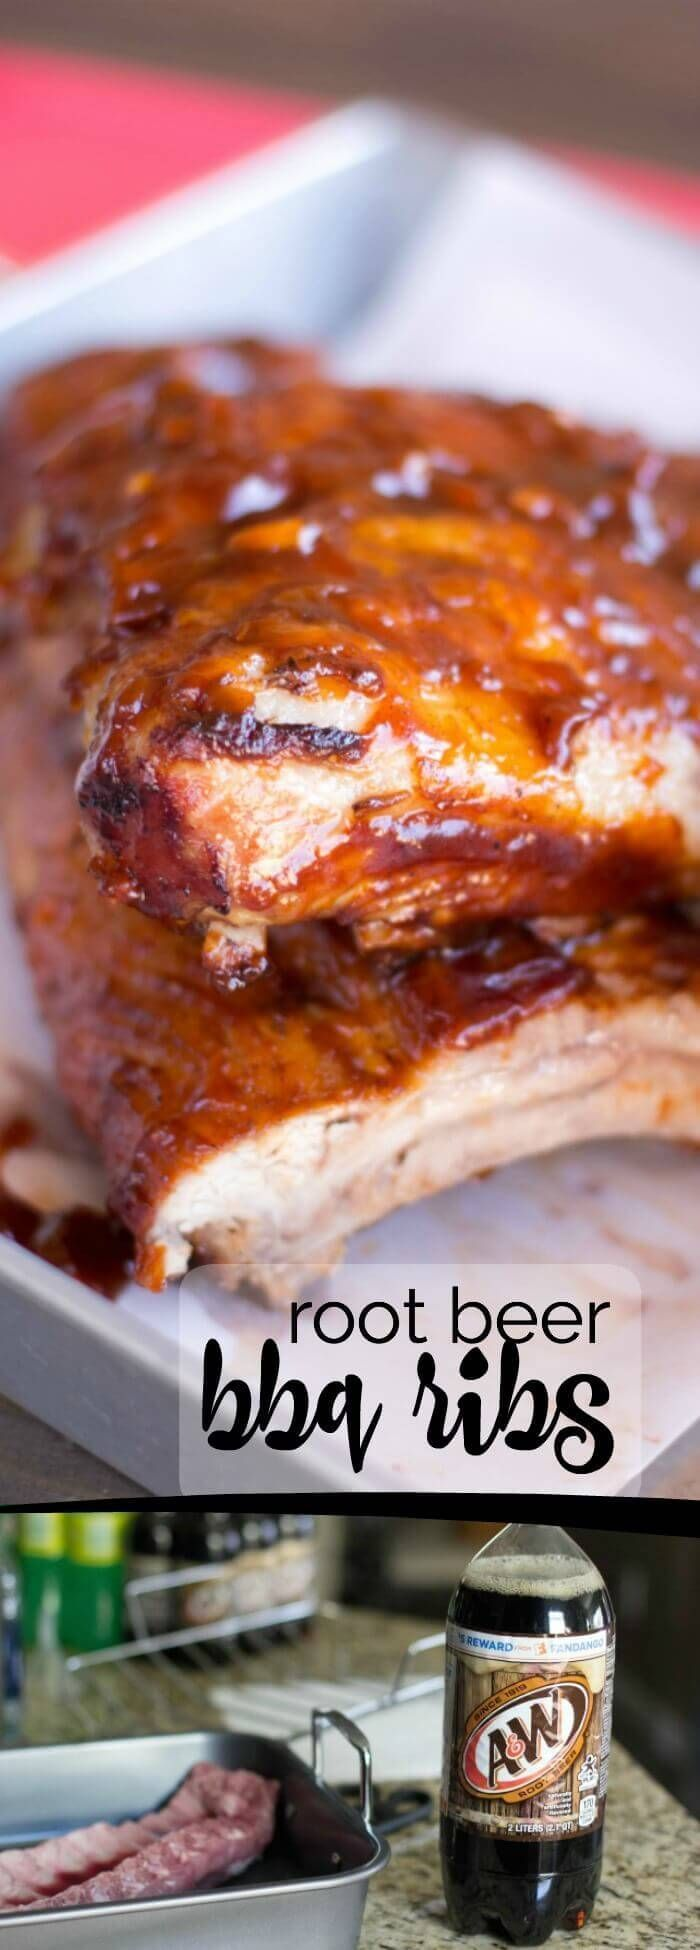 A&W Root Beer BBQ Ribs Recipe!